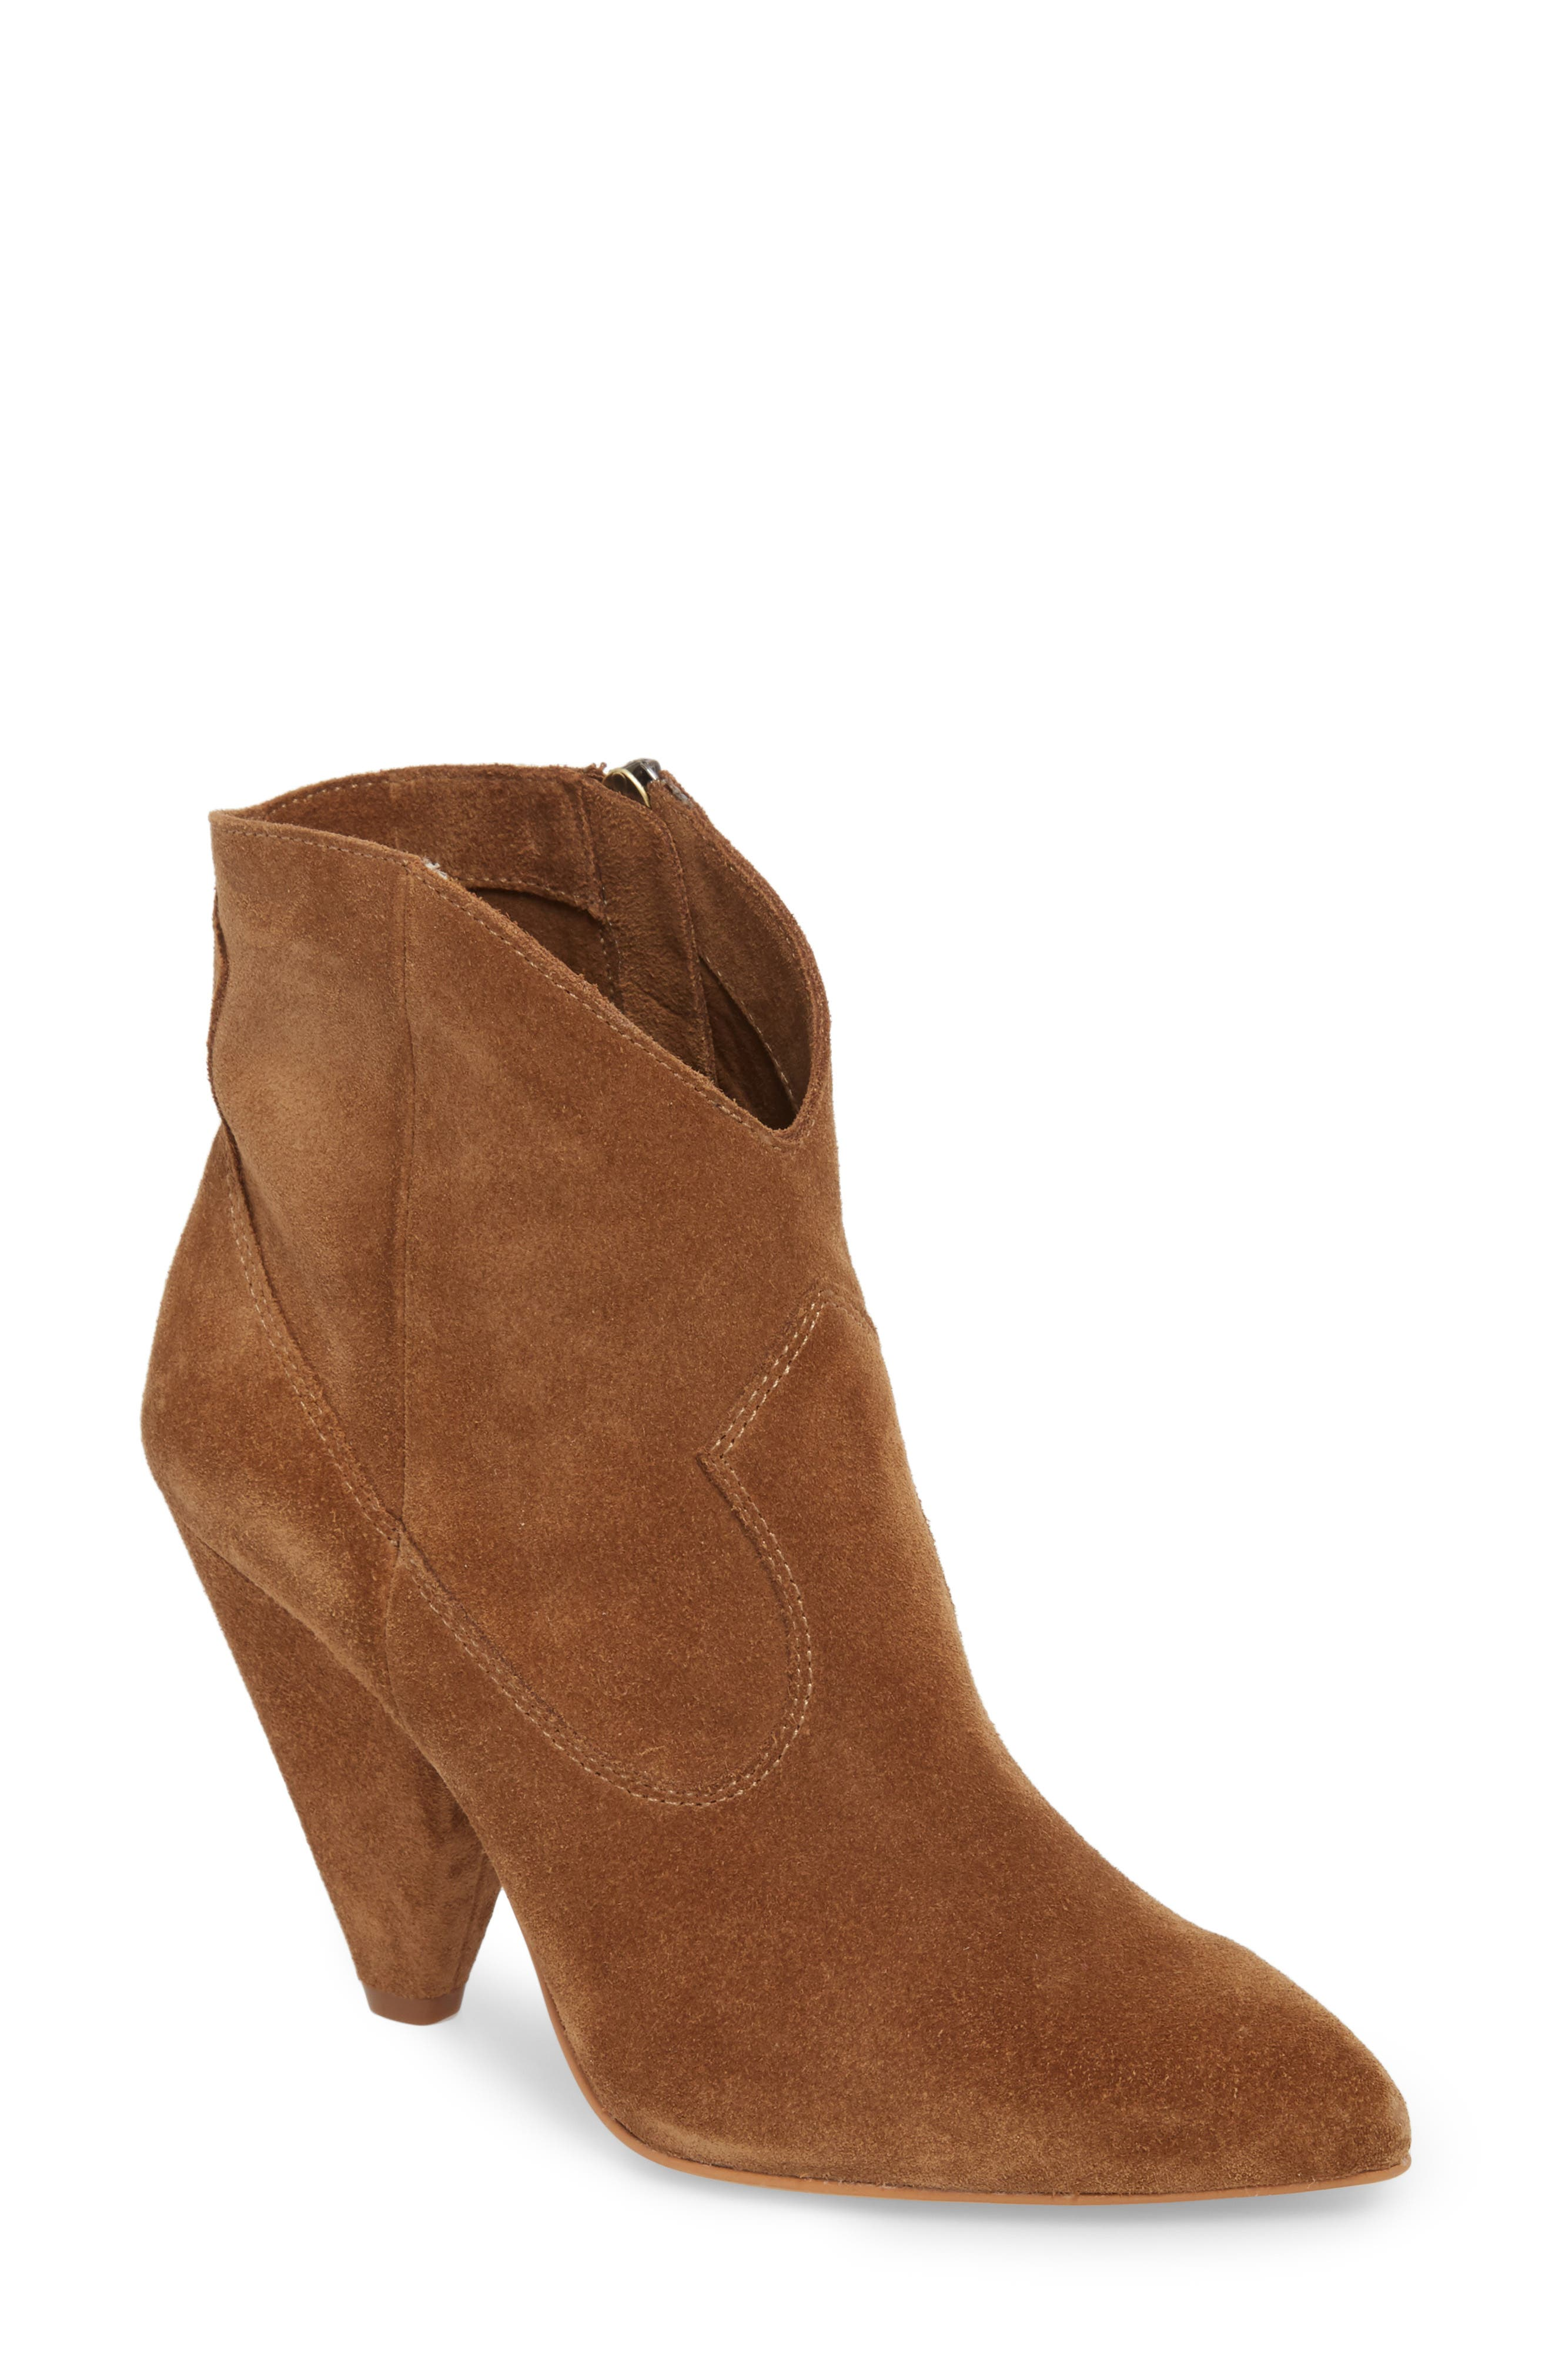 Movinta Bootie,                         Main,                         color, TREE HOUSE SUEDE